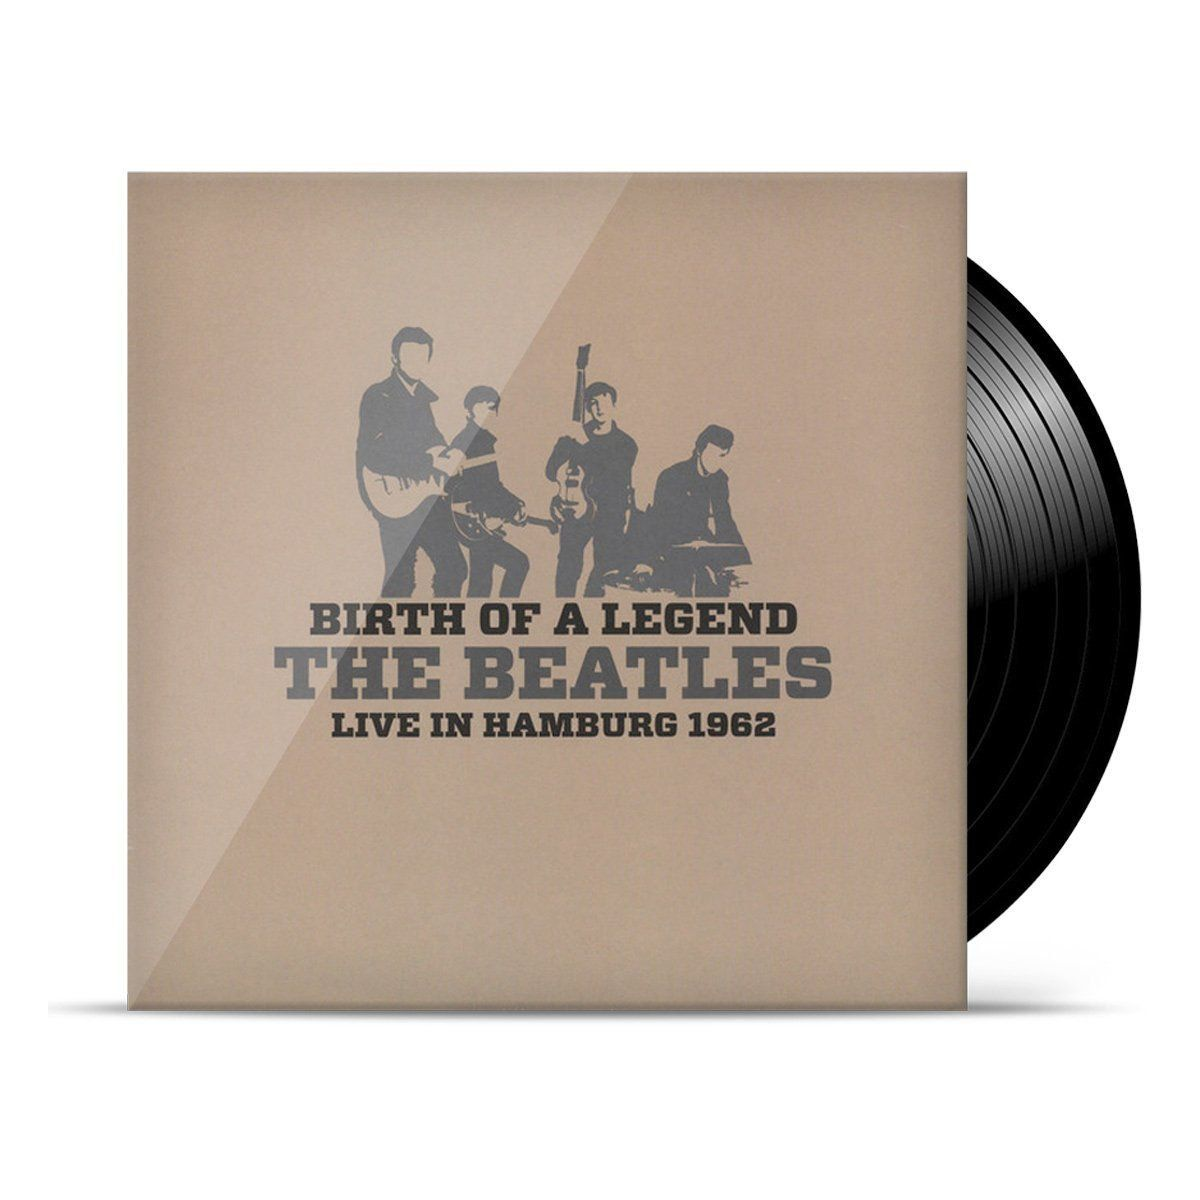 LP The Beatles Birth Of A Legend Live In Hamburg 1962  - bandUP Store Marketplace